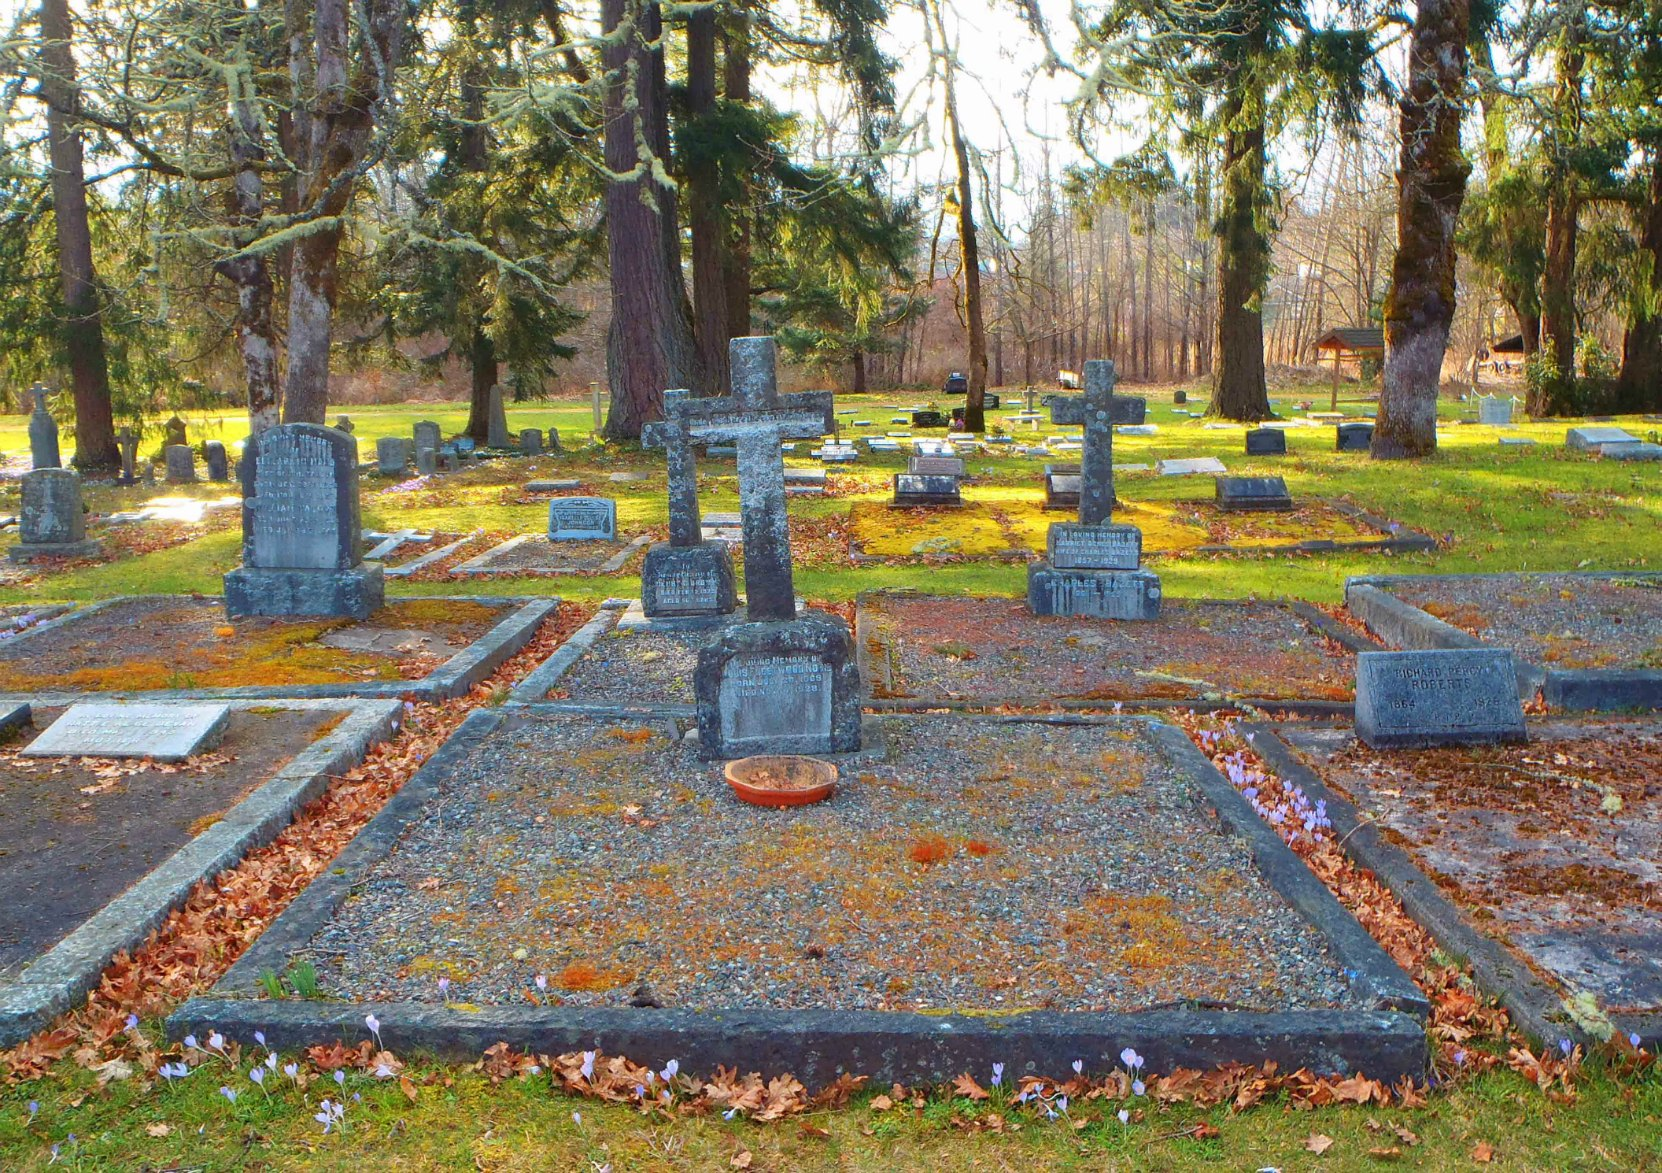 Francis James Norie family burial plot, St. Peter's Quamichan Anglican cemetery, North Cowichan.